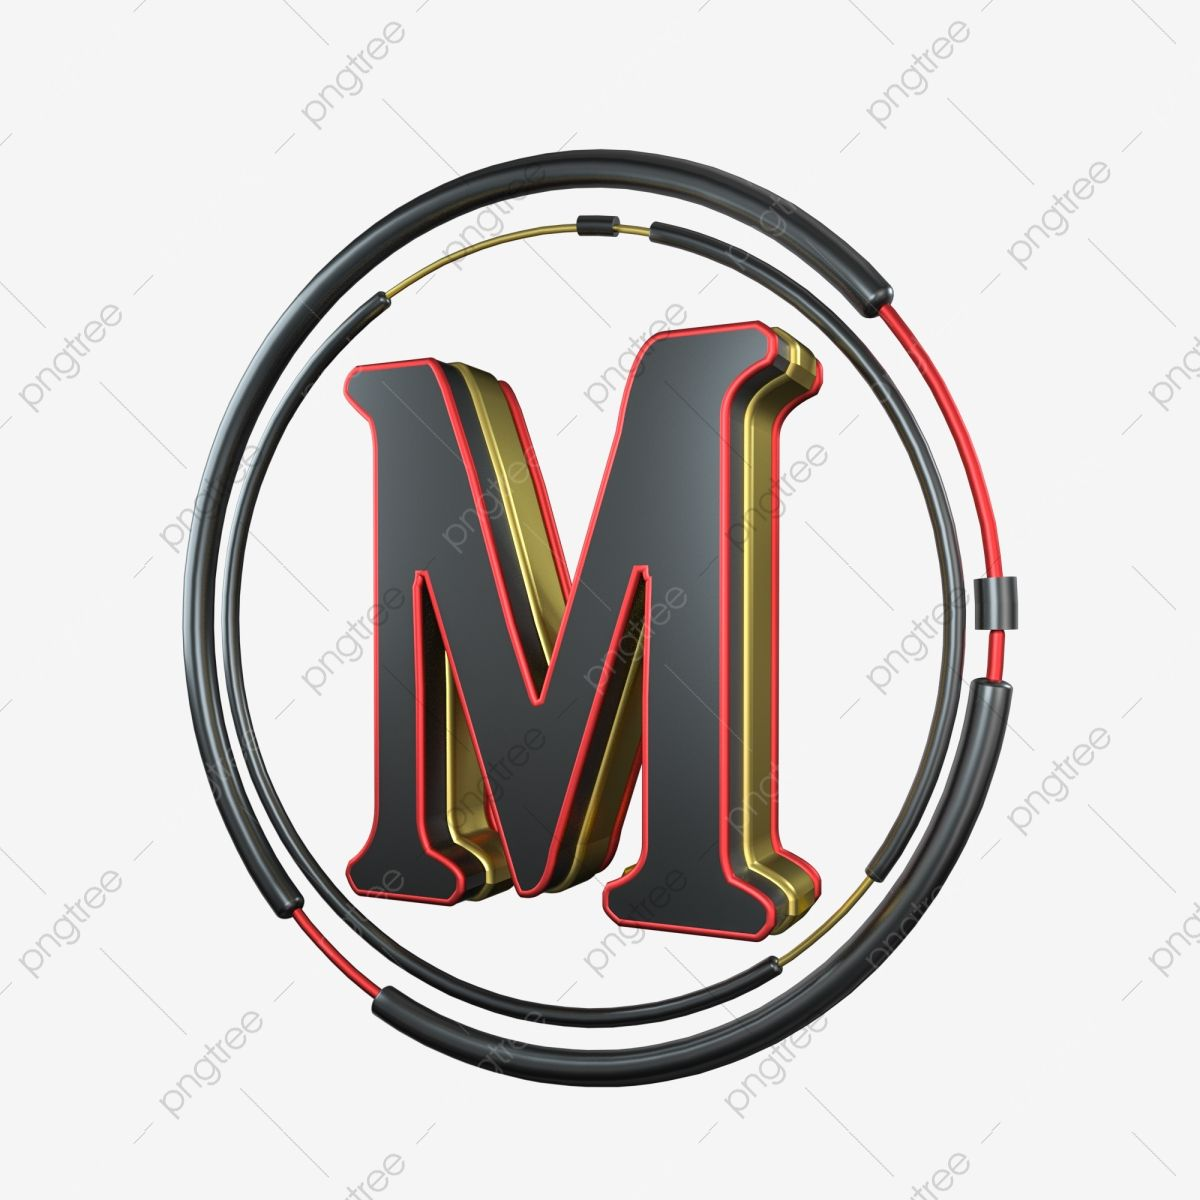 C4d Cool Black Red Gold Three Dimensional Letter M Decoration C4d 3d Cool Png Transparent Clipart Image And Psd File For Free Download Lettering Clip Art Black And Red